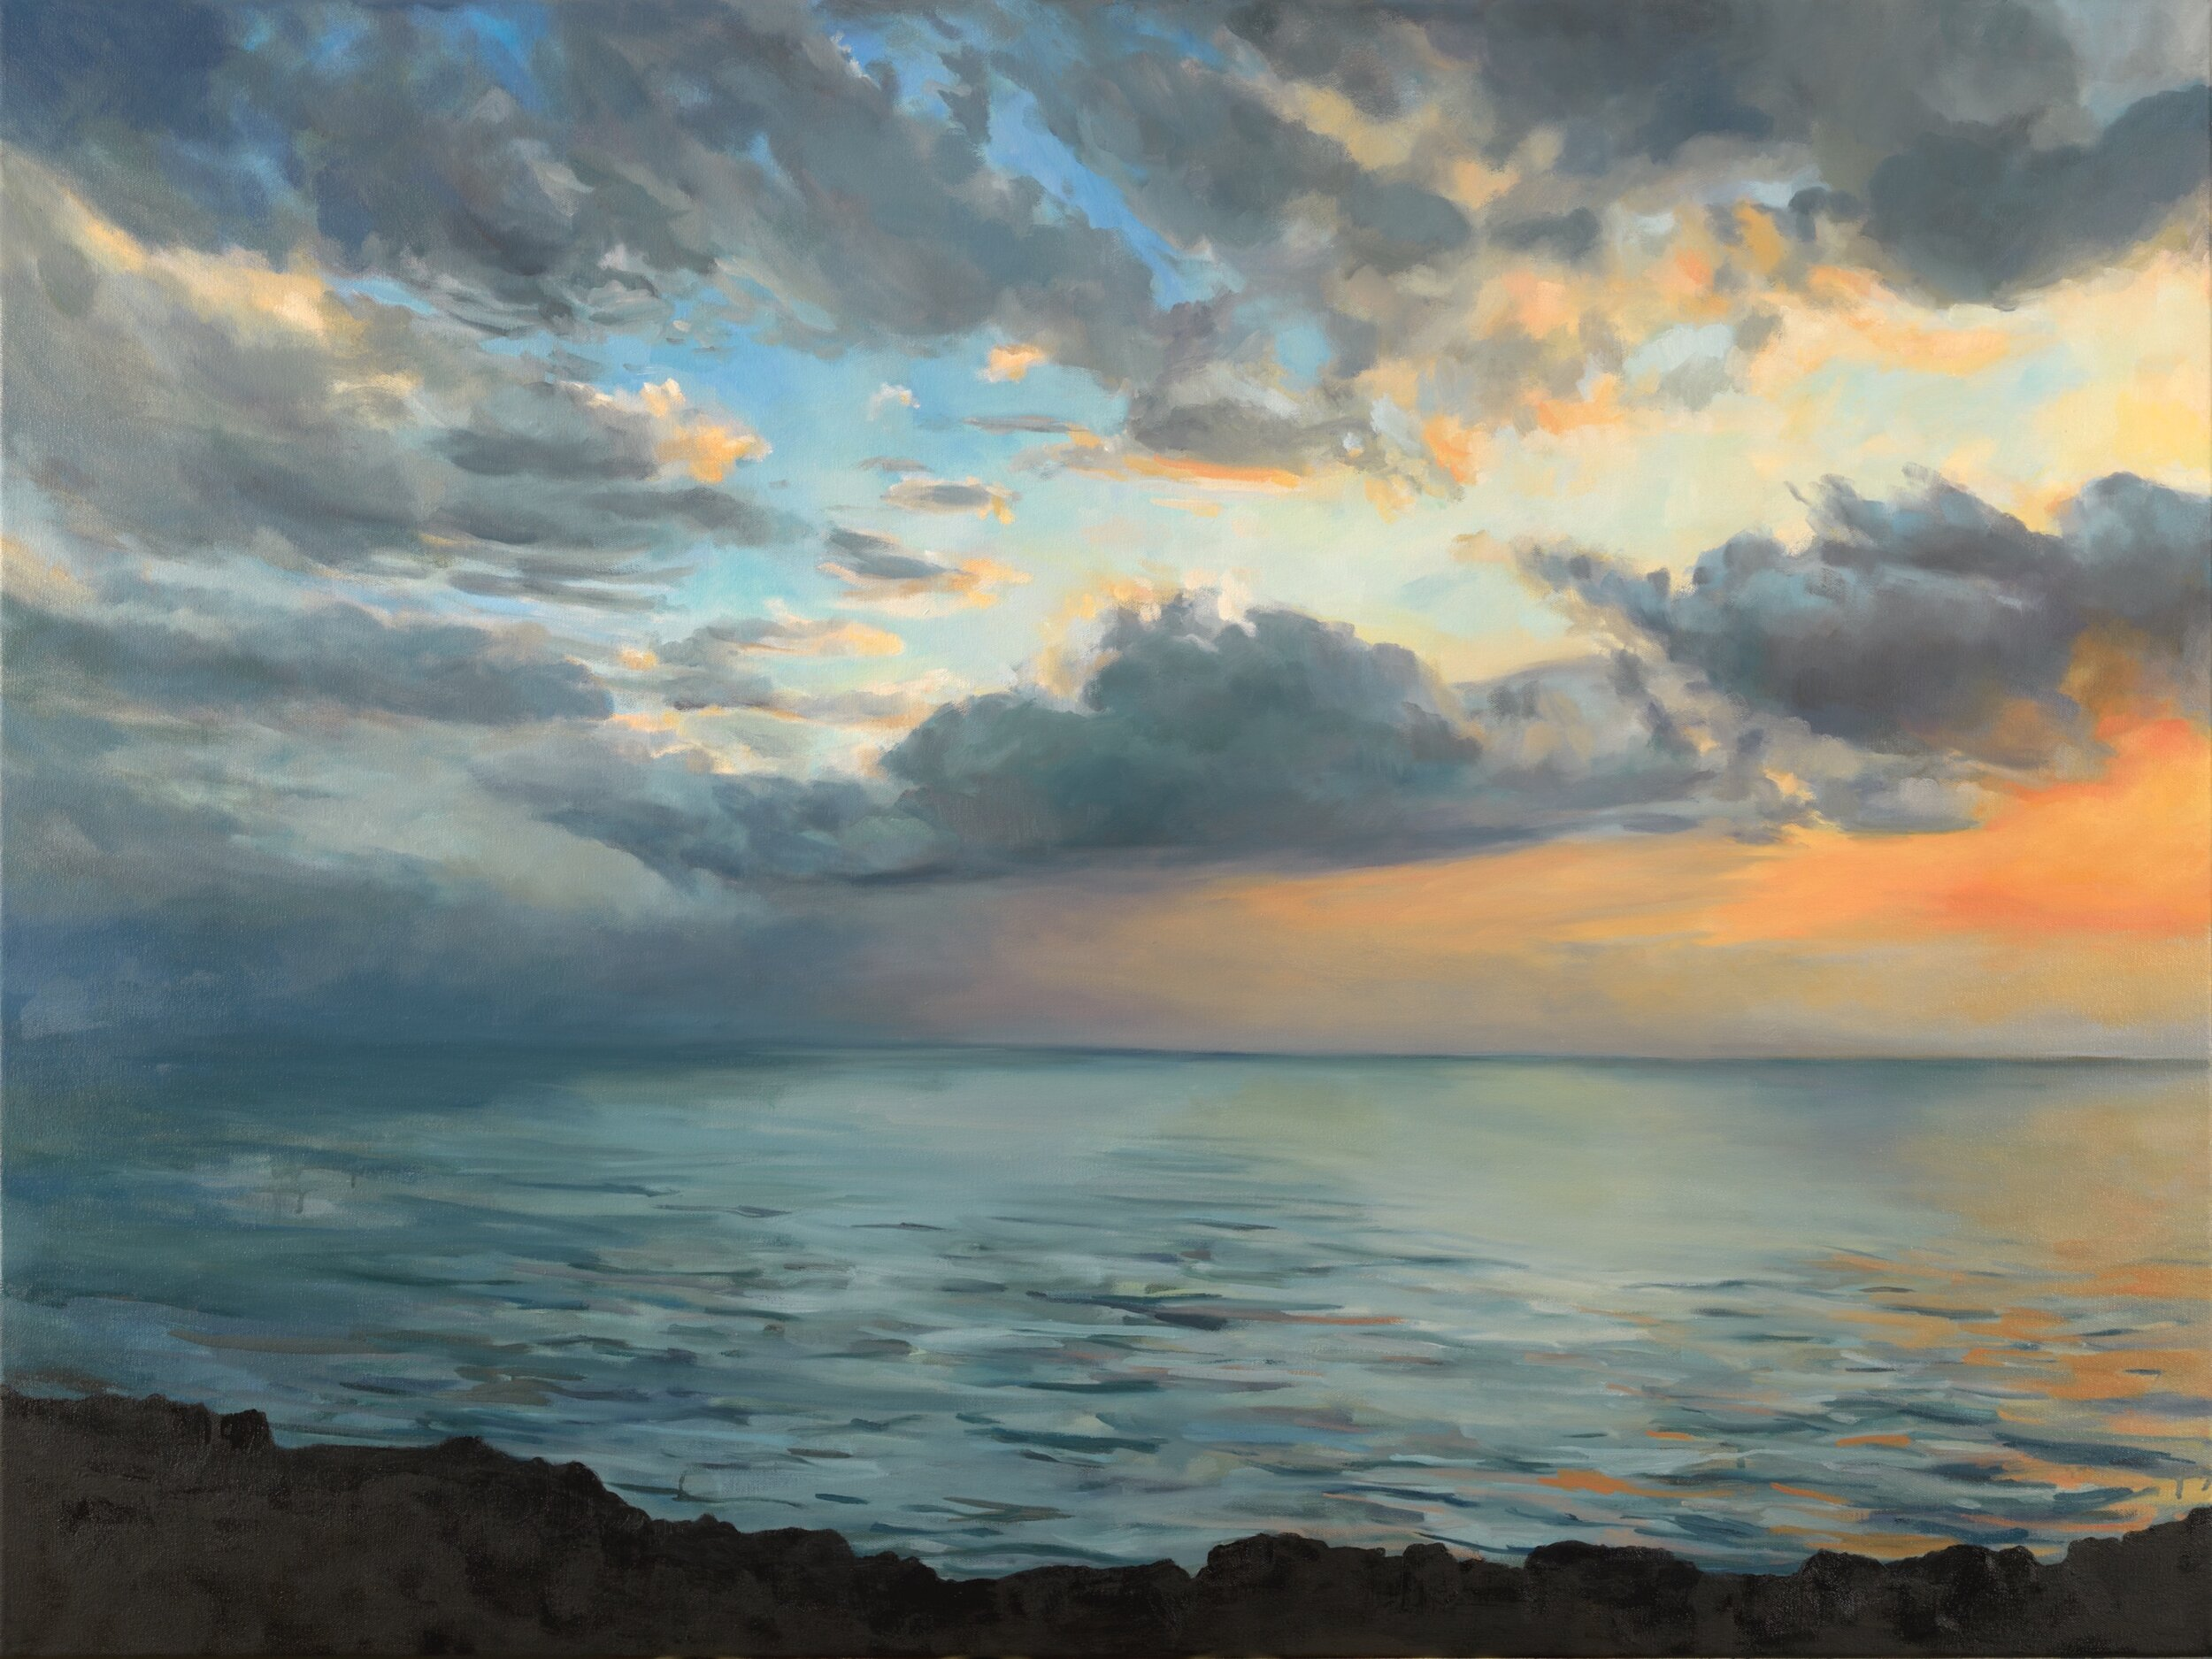 """'Kona'  2017  48"""" x 36""""  water soluble oil on canvas  sold"""